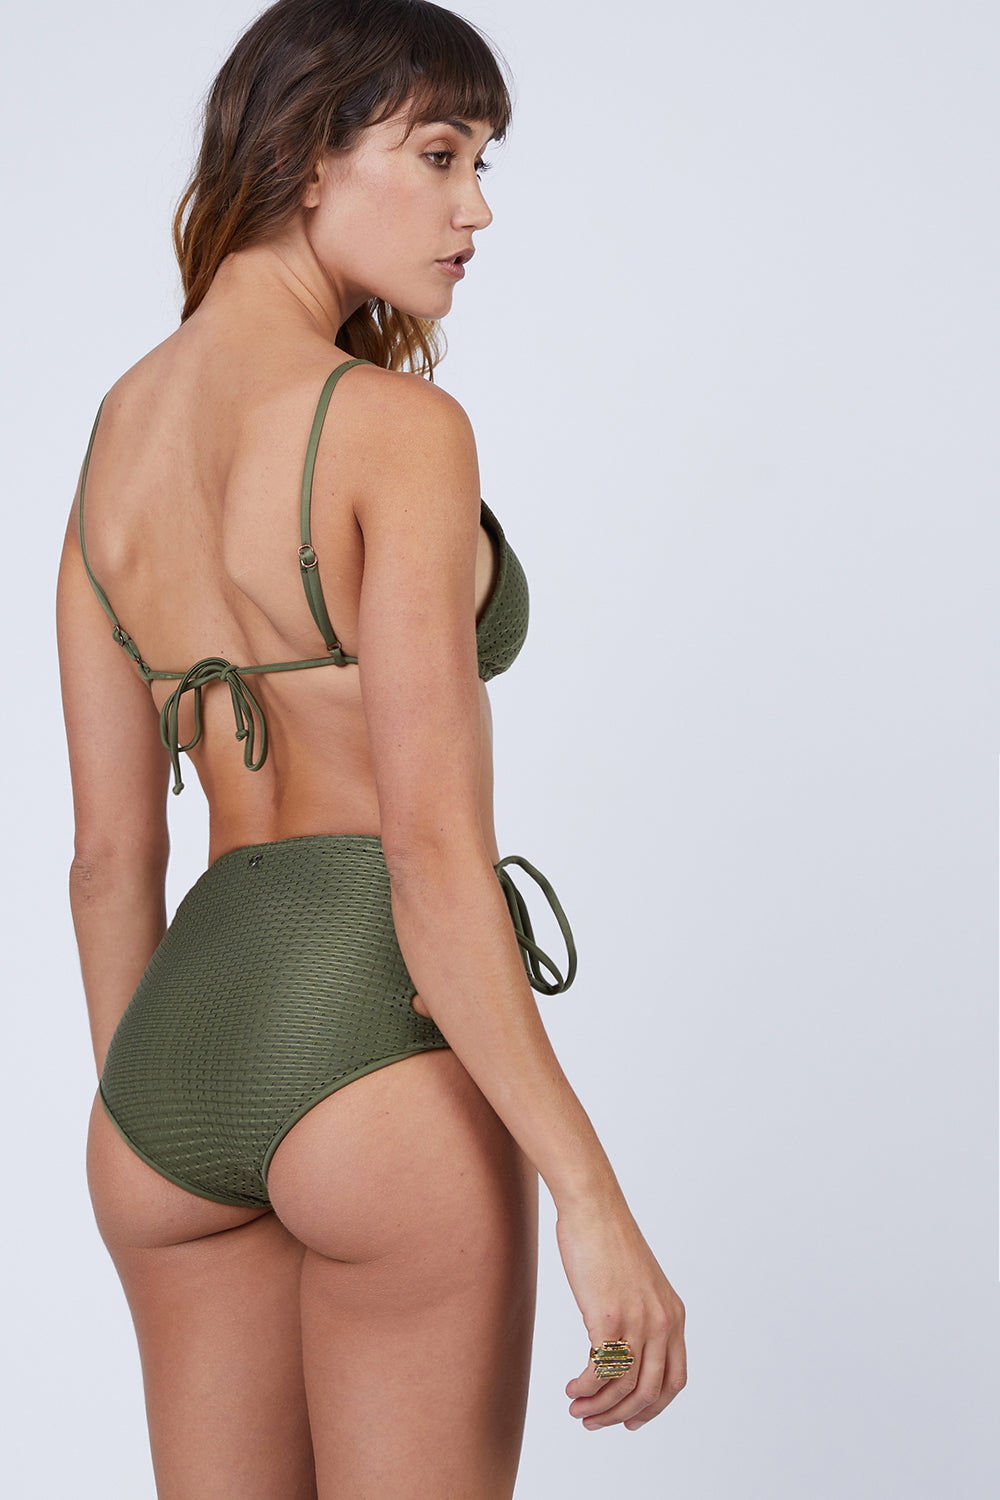 ROSA CHA Basic Triangle Bikini Top - Olive Green Bikini Top | Olive Green| Rosa Cha Basic Triangle Bikini Top - Olive Green Basic Triangle Top  Adjustable Sliding Triangles  Ties at Halter Neck  Ties at Center Back View